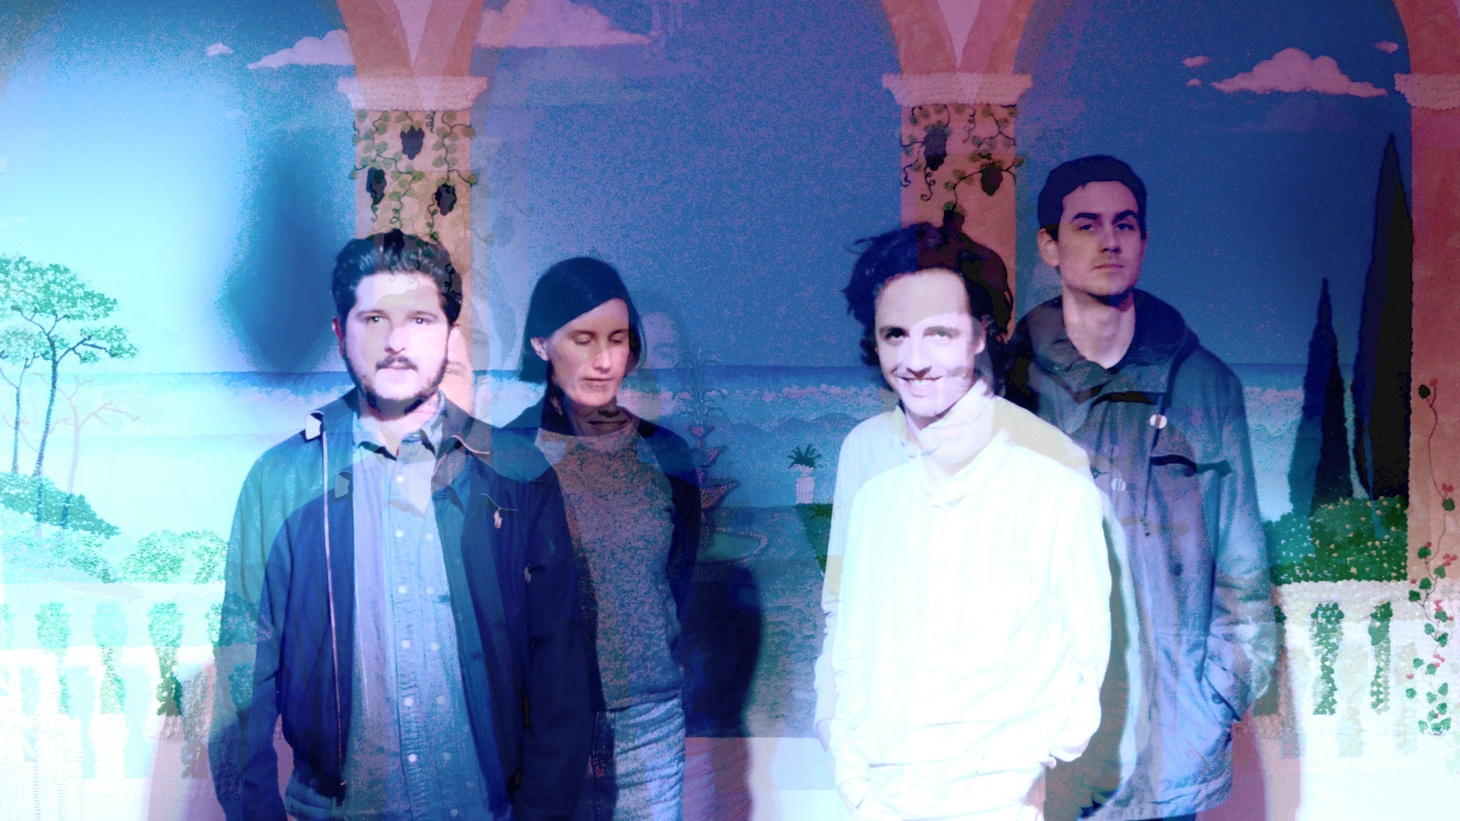 Twerps is a promising Melbourne quintet who just released their debut full length on Merge Records.